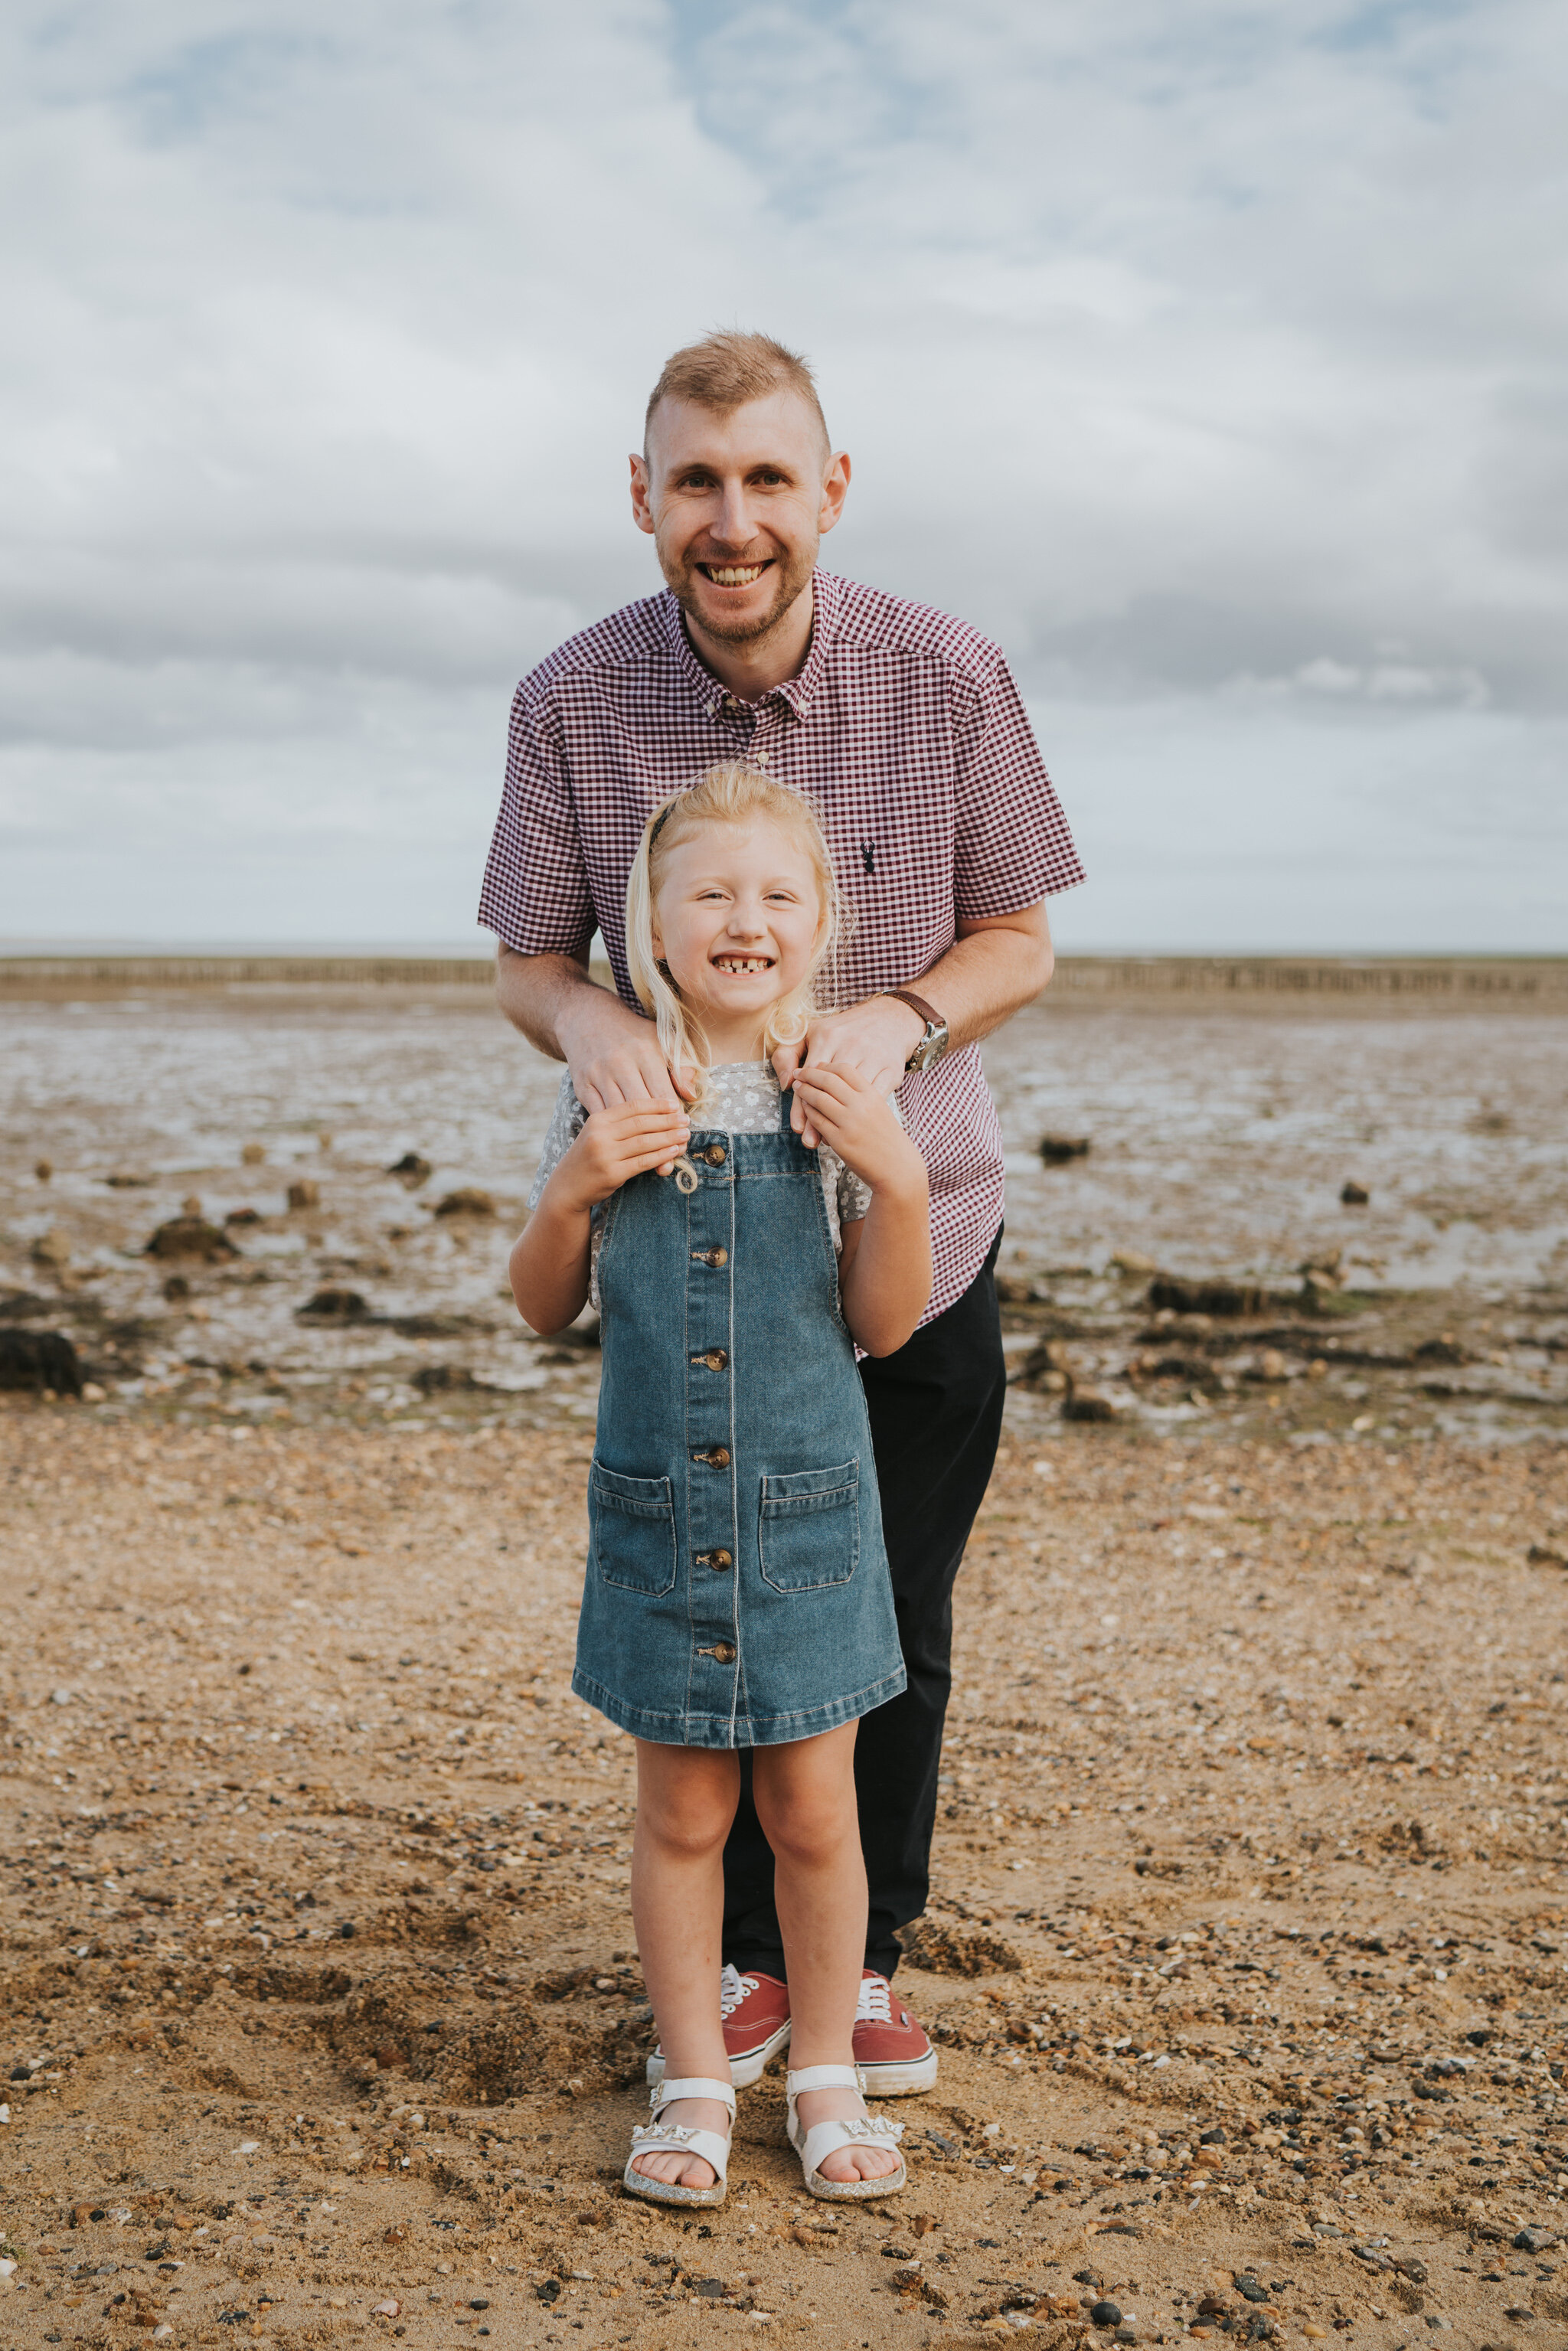 celebratory-beach-family-session-thomson-family-cudmore-grove-east-mersea-grace-elizabeth-colchester-essex-devon-suffolk-and-norfolk-alternative-wedding-and-family-photographer (34 of 53).jpg